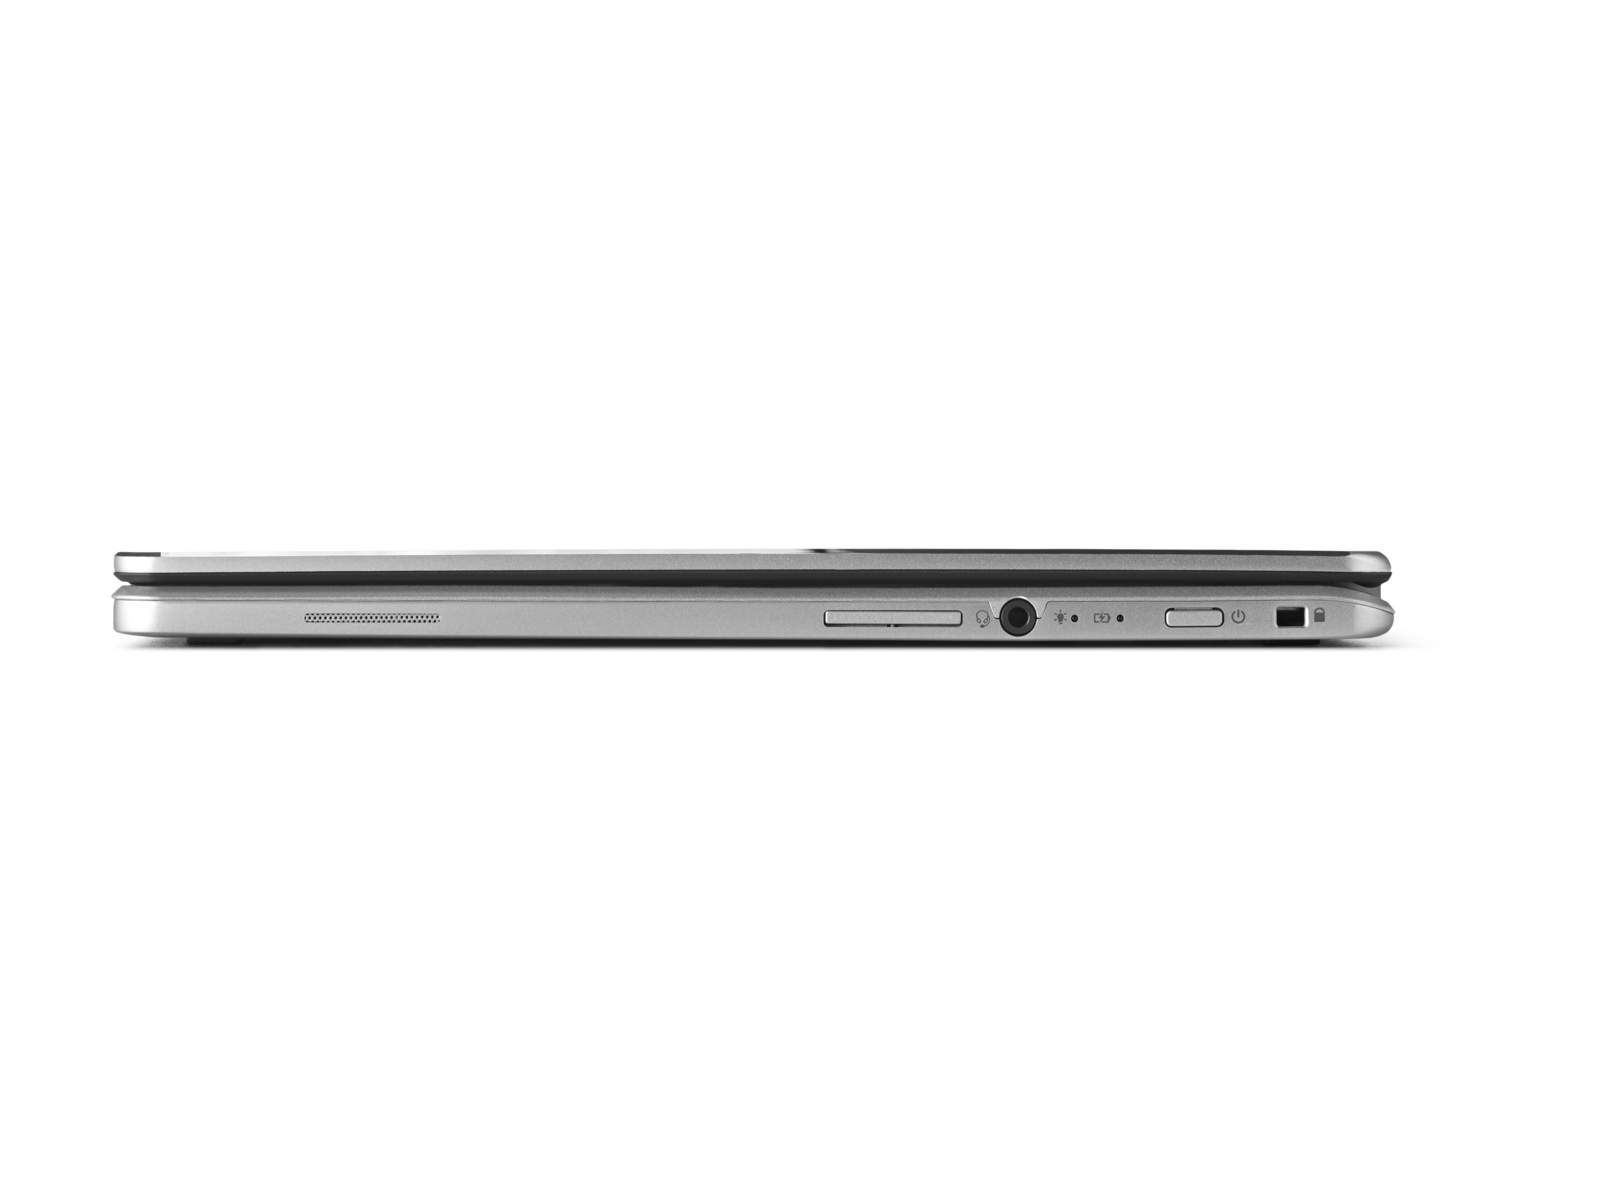 Acer Chromebook R13 (CB5-312T) - photo 5